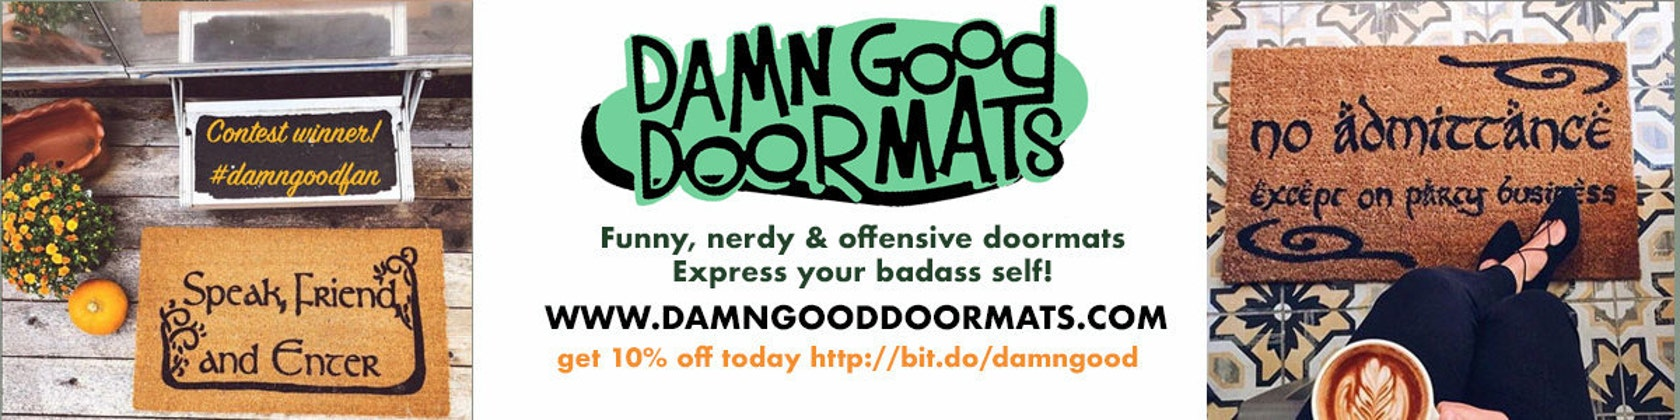 251503504 Every home needs a doormat make yours Damn by DamnGoodDoormats